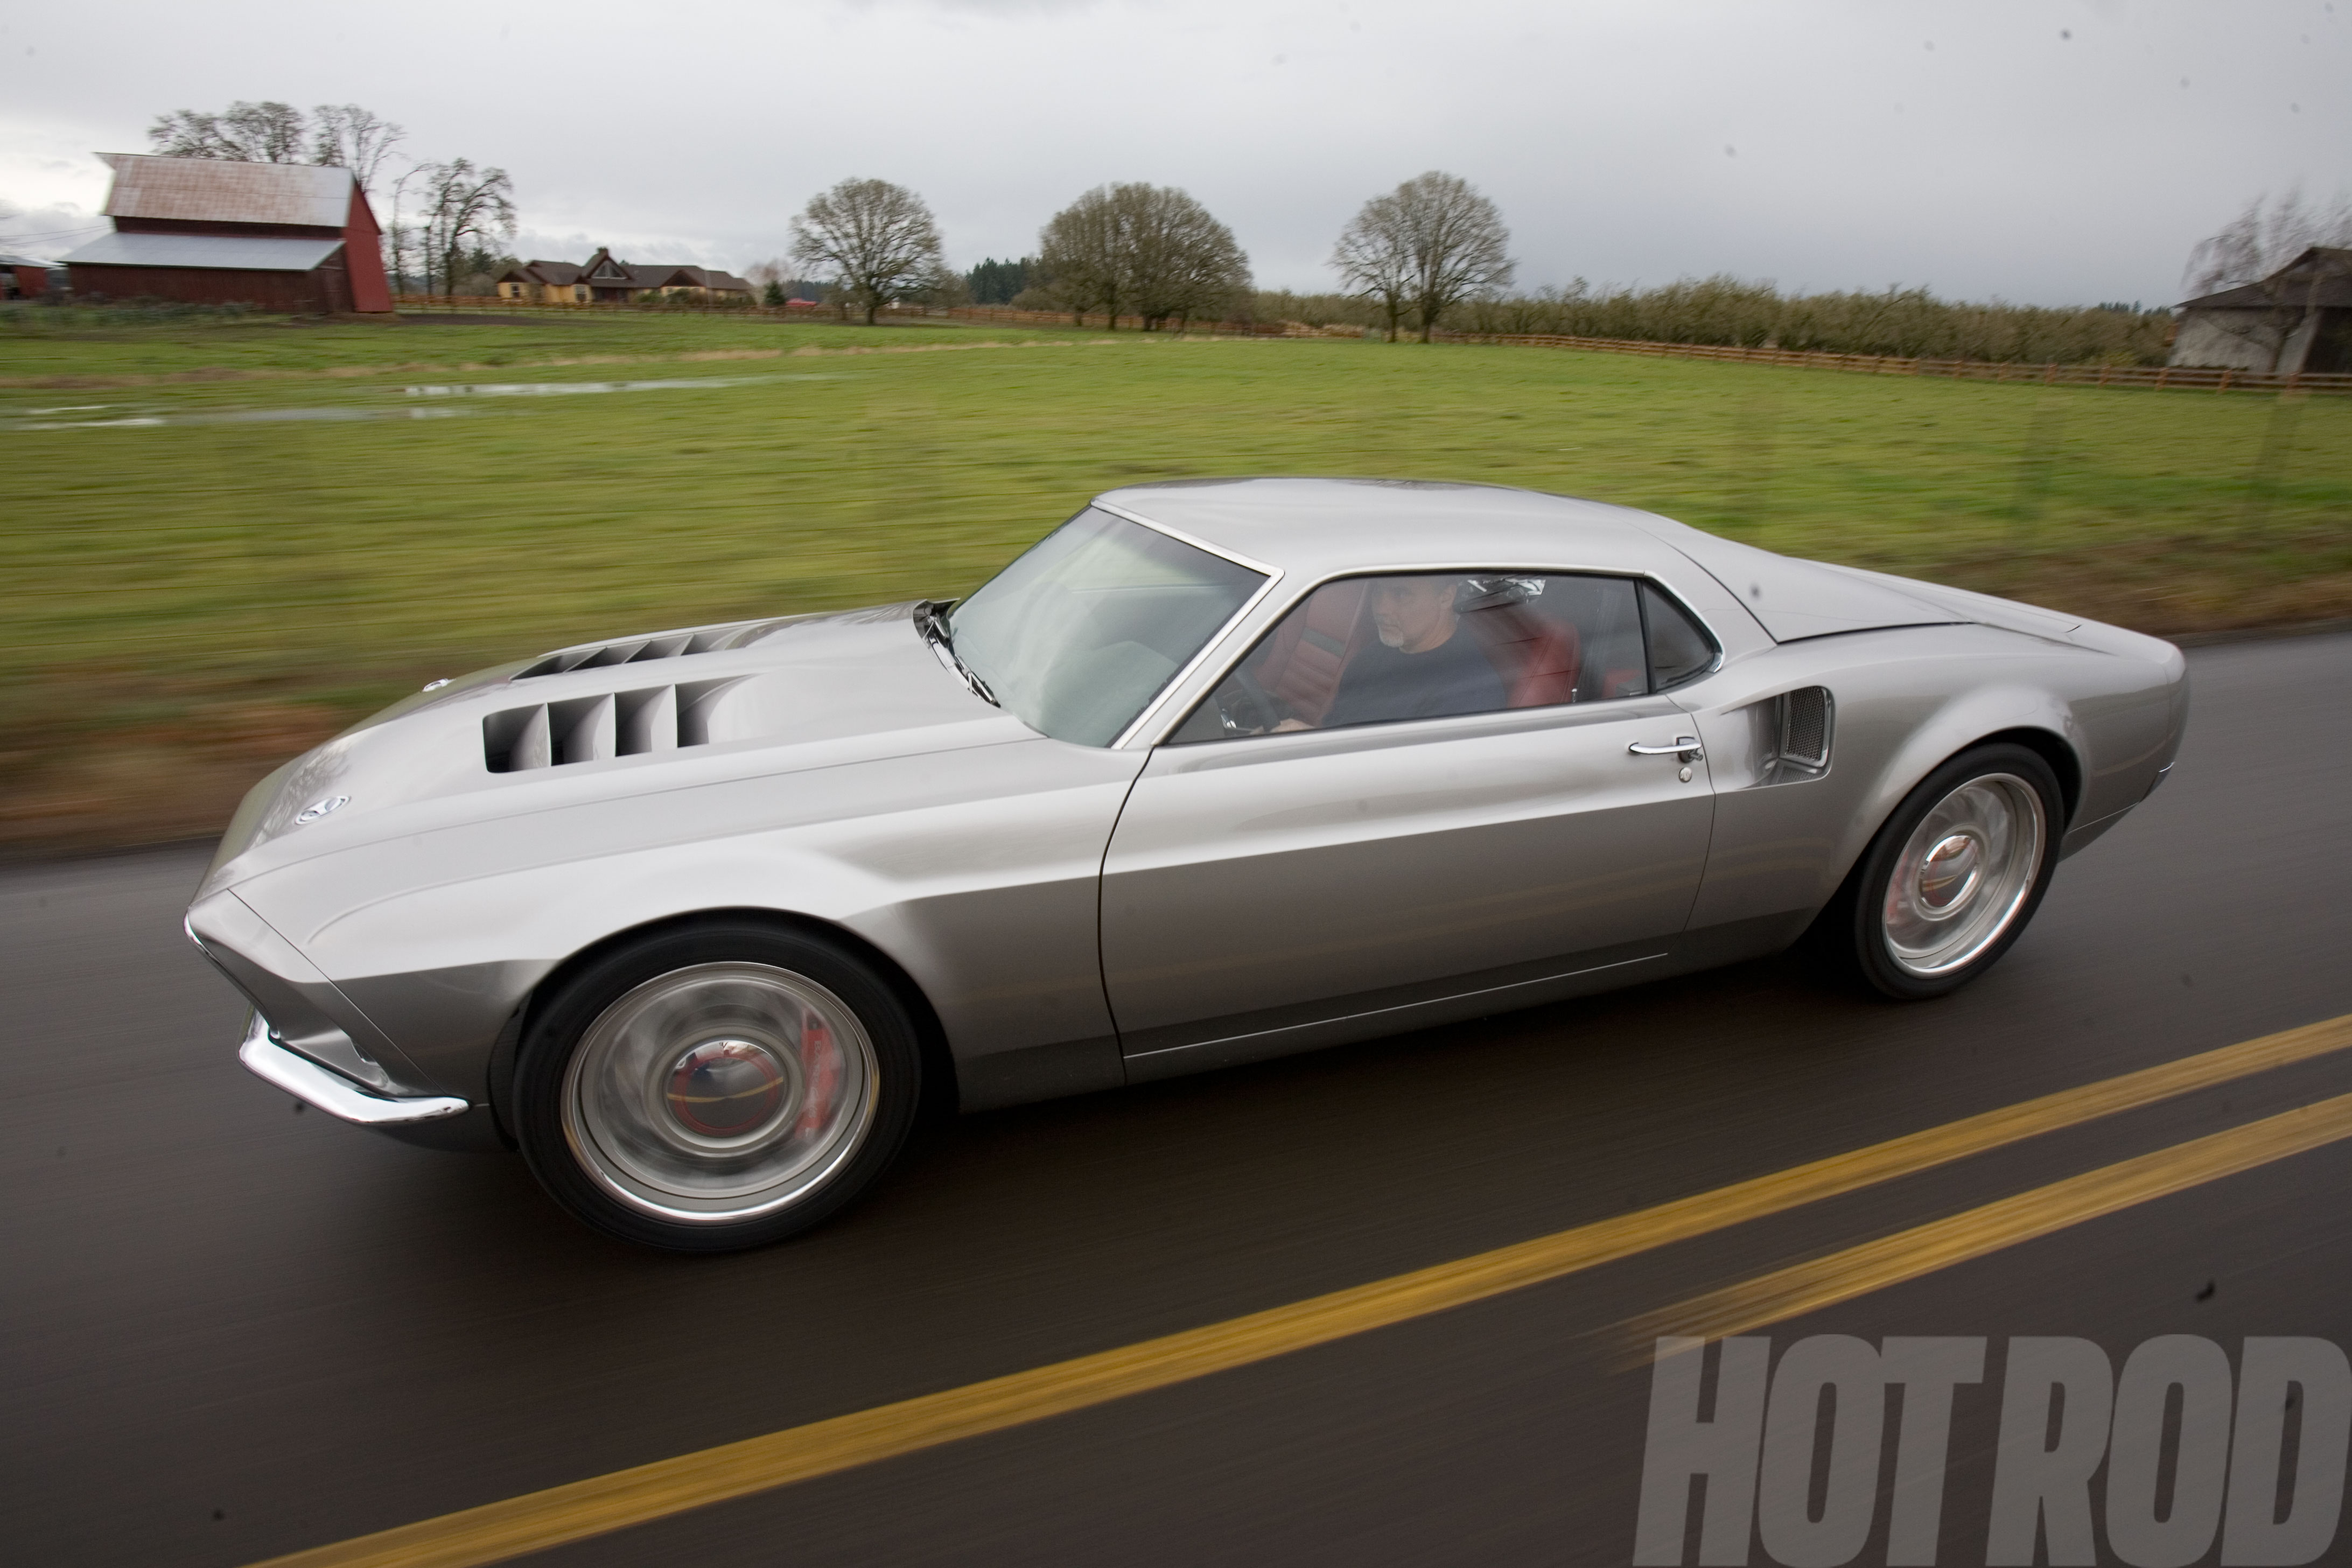 Magnificent Cars From 1969 Contemporary - Classic Cars Ideas - boiq.info